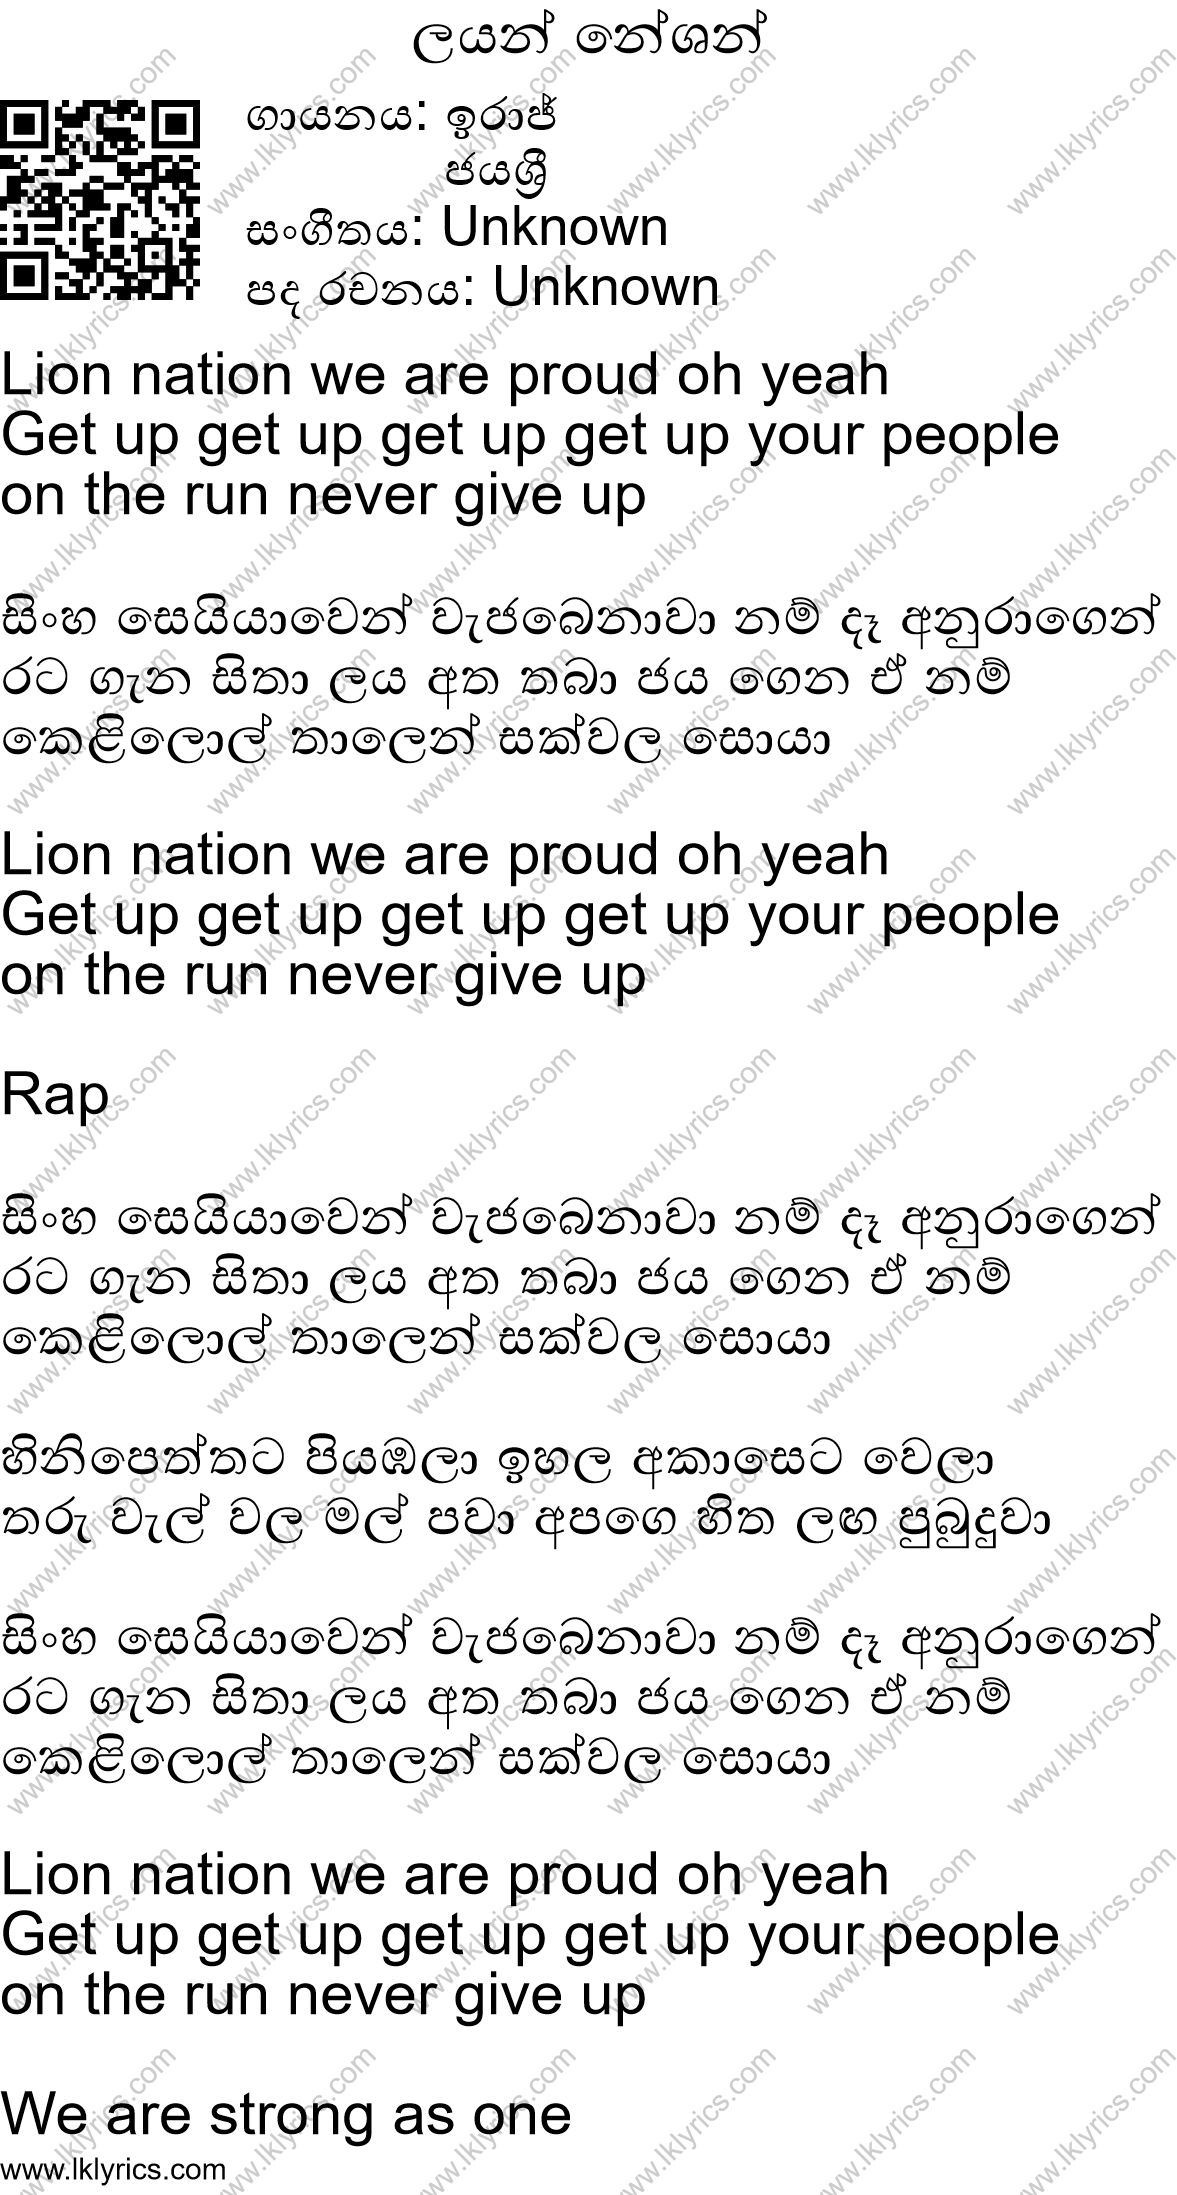 Lion nation we are proud oh yeah Get up get up get up get up your people on the run never give up සිංහ සෙයියාවෙන් වැජ...